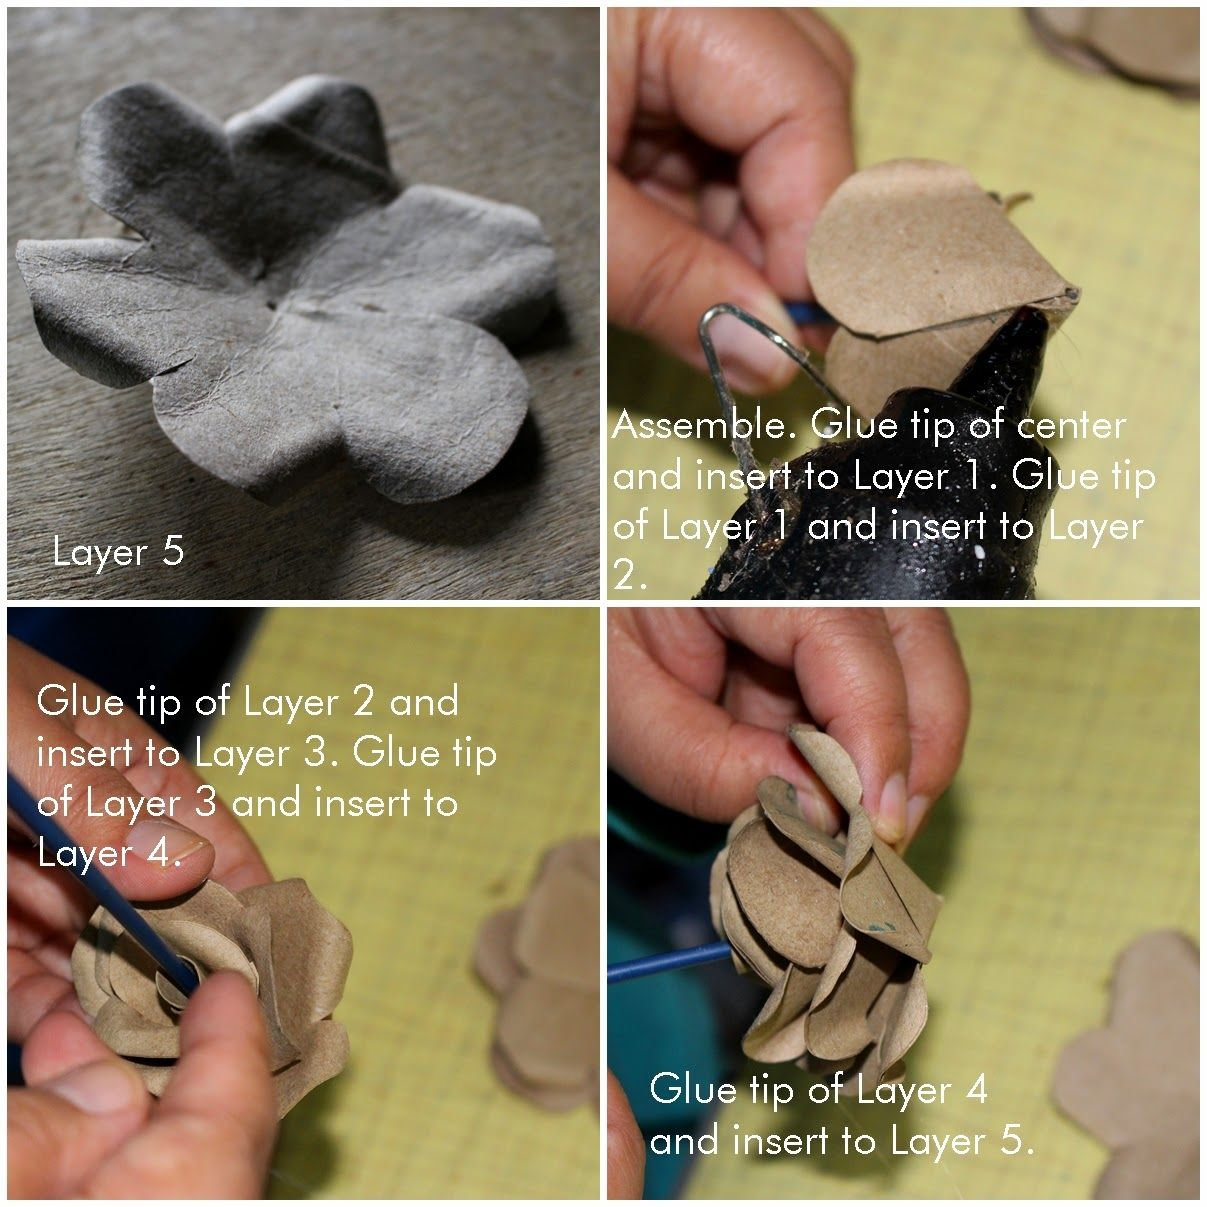 Reduce reuse recycle replenish restore diy how to make empty toilet paper tubes have many uses i use them to wrap bouquet handles before finishing them with ribbons or twines jeuxipadfo Images